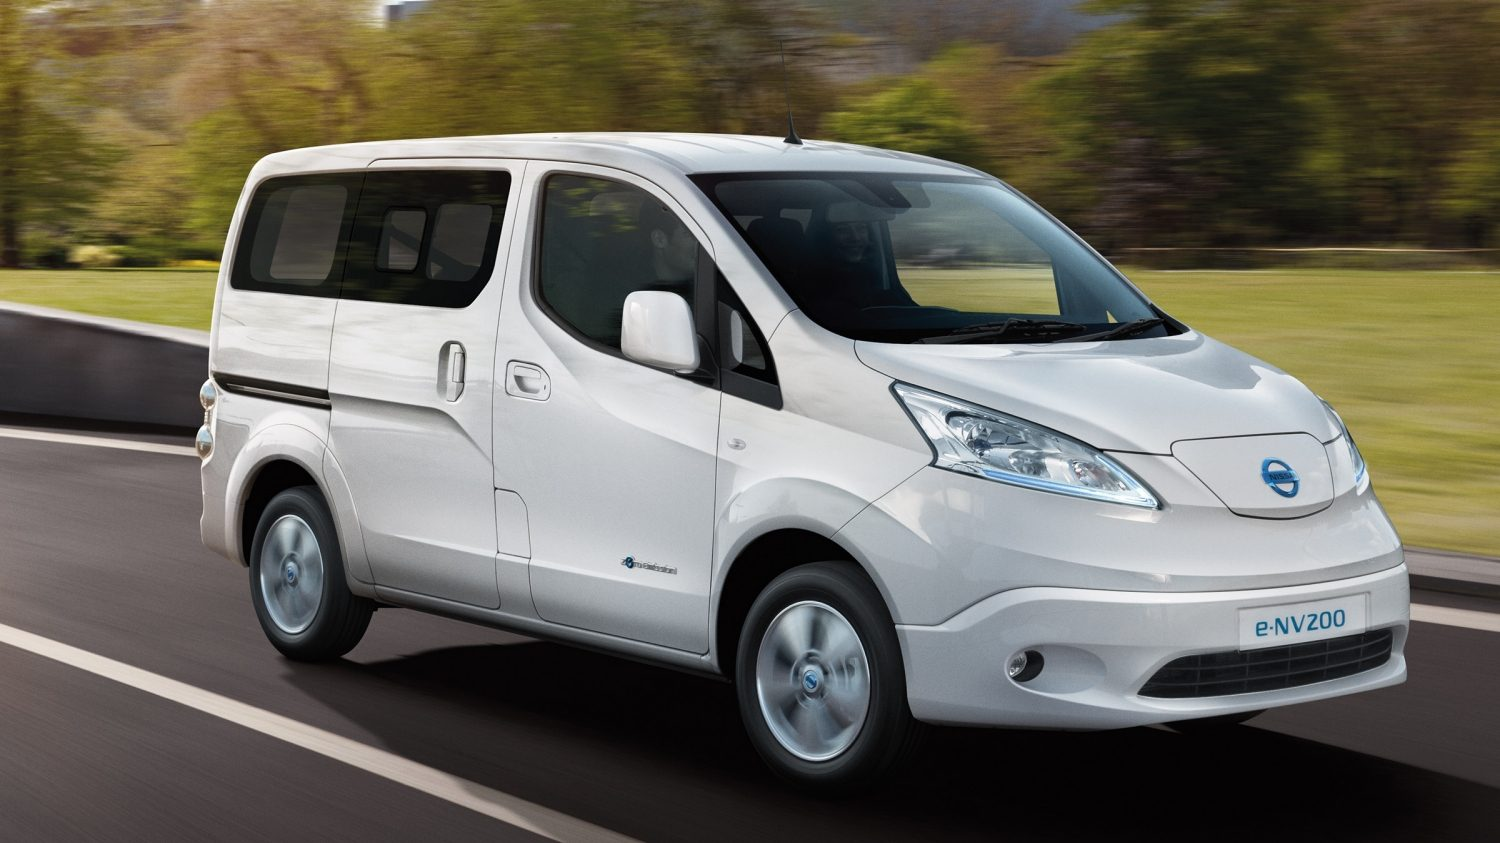 New Nissan e-NV200 COMBI driving outside the city